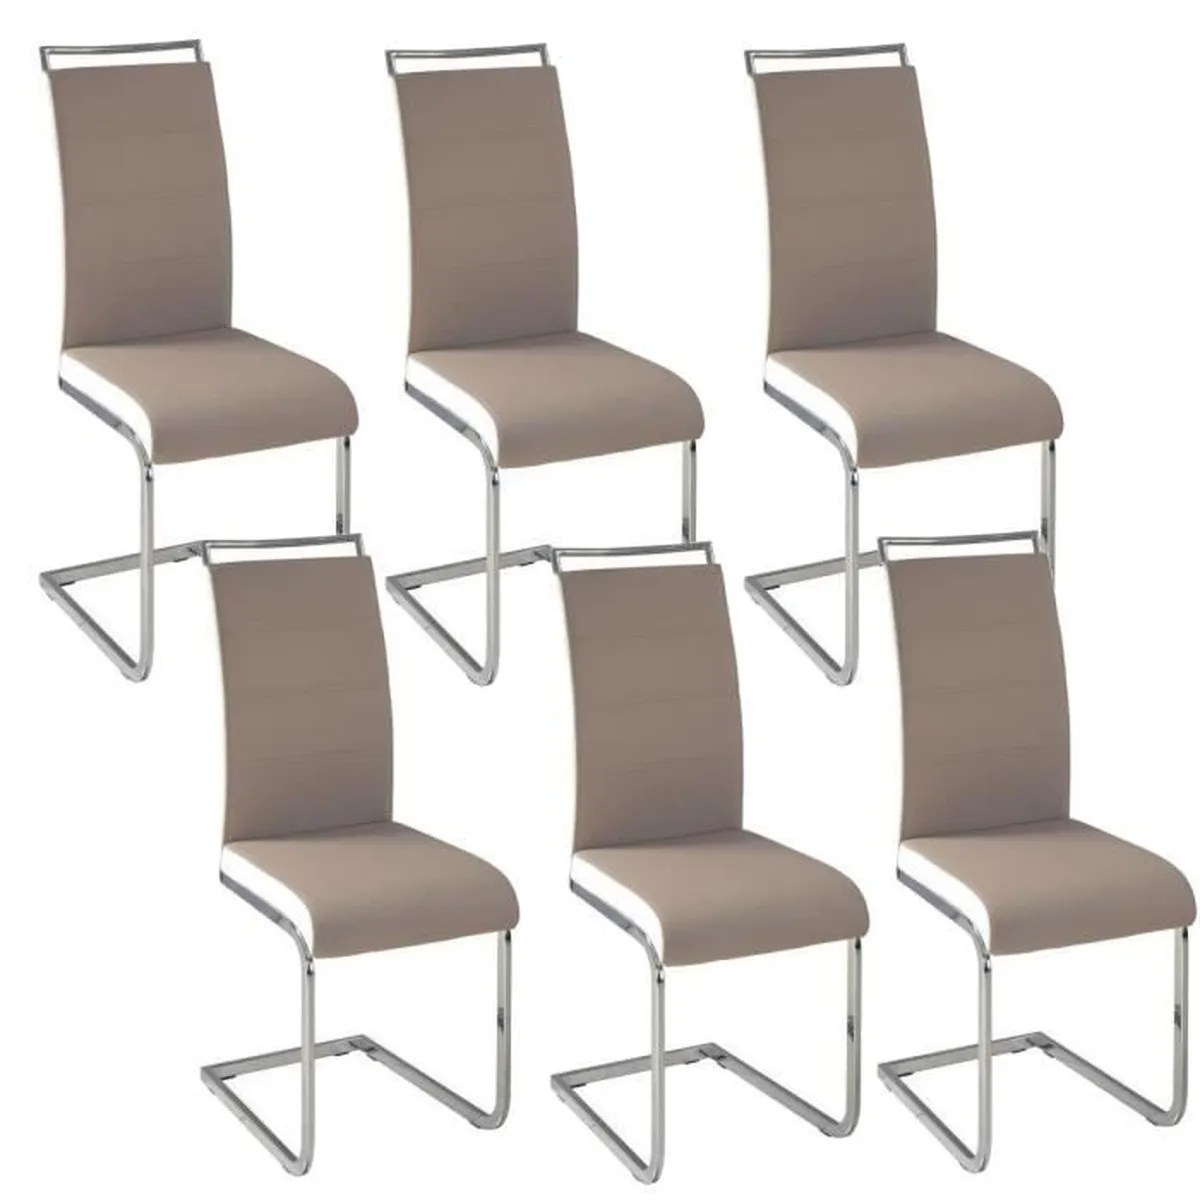 Cdiscount Chaise Salon Dylan Lot De 6 Chaises Salon Taupe Blanc - Achat / Vente